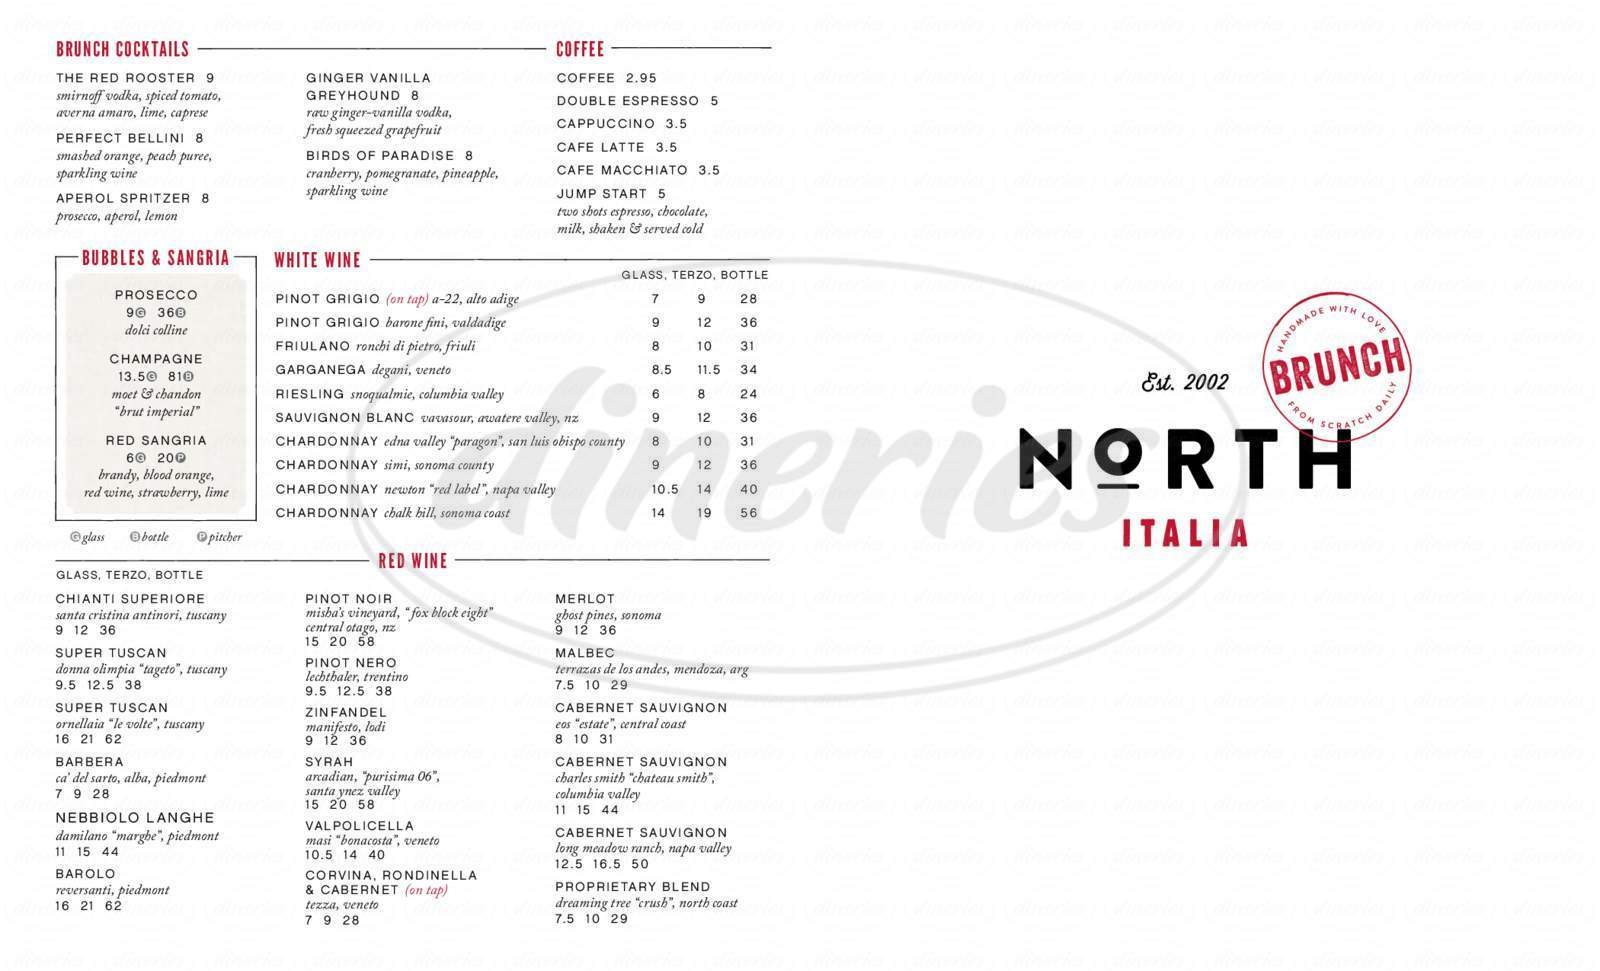 menu for North Italia